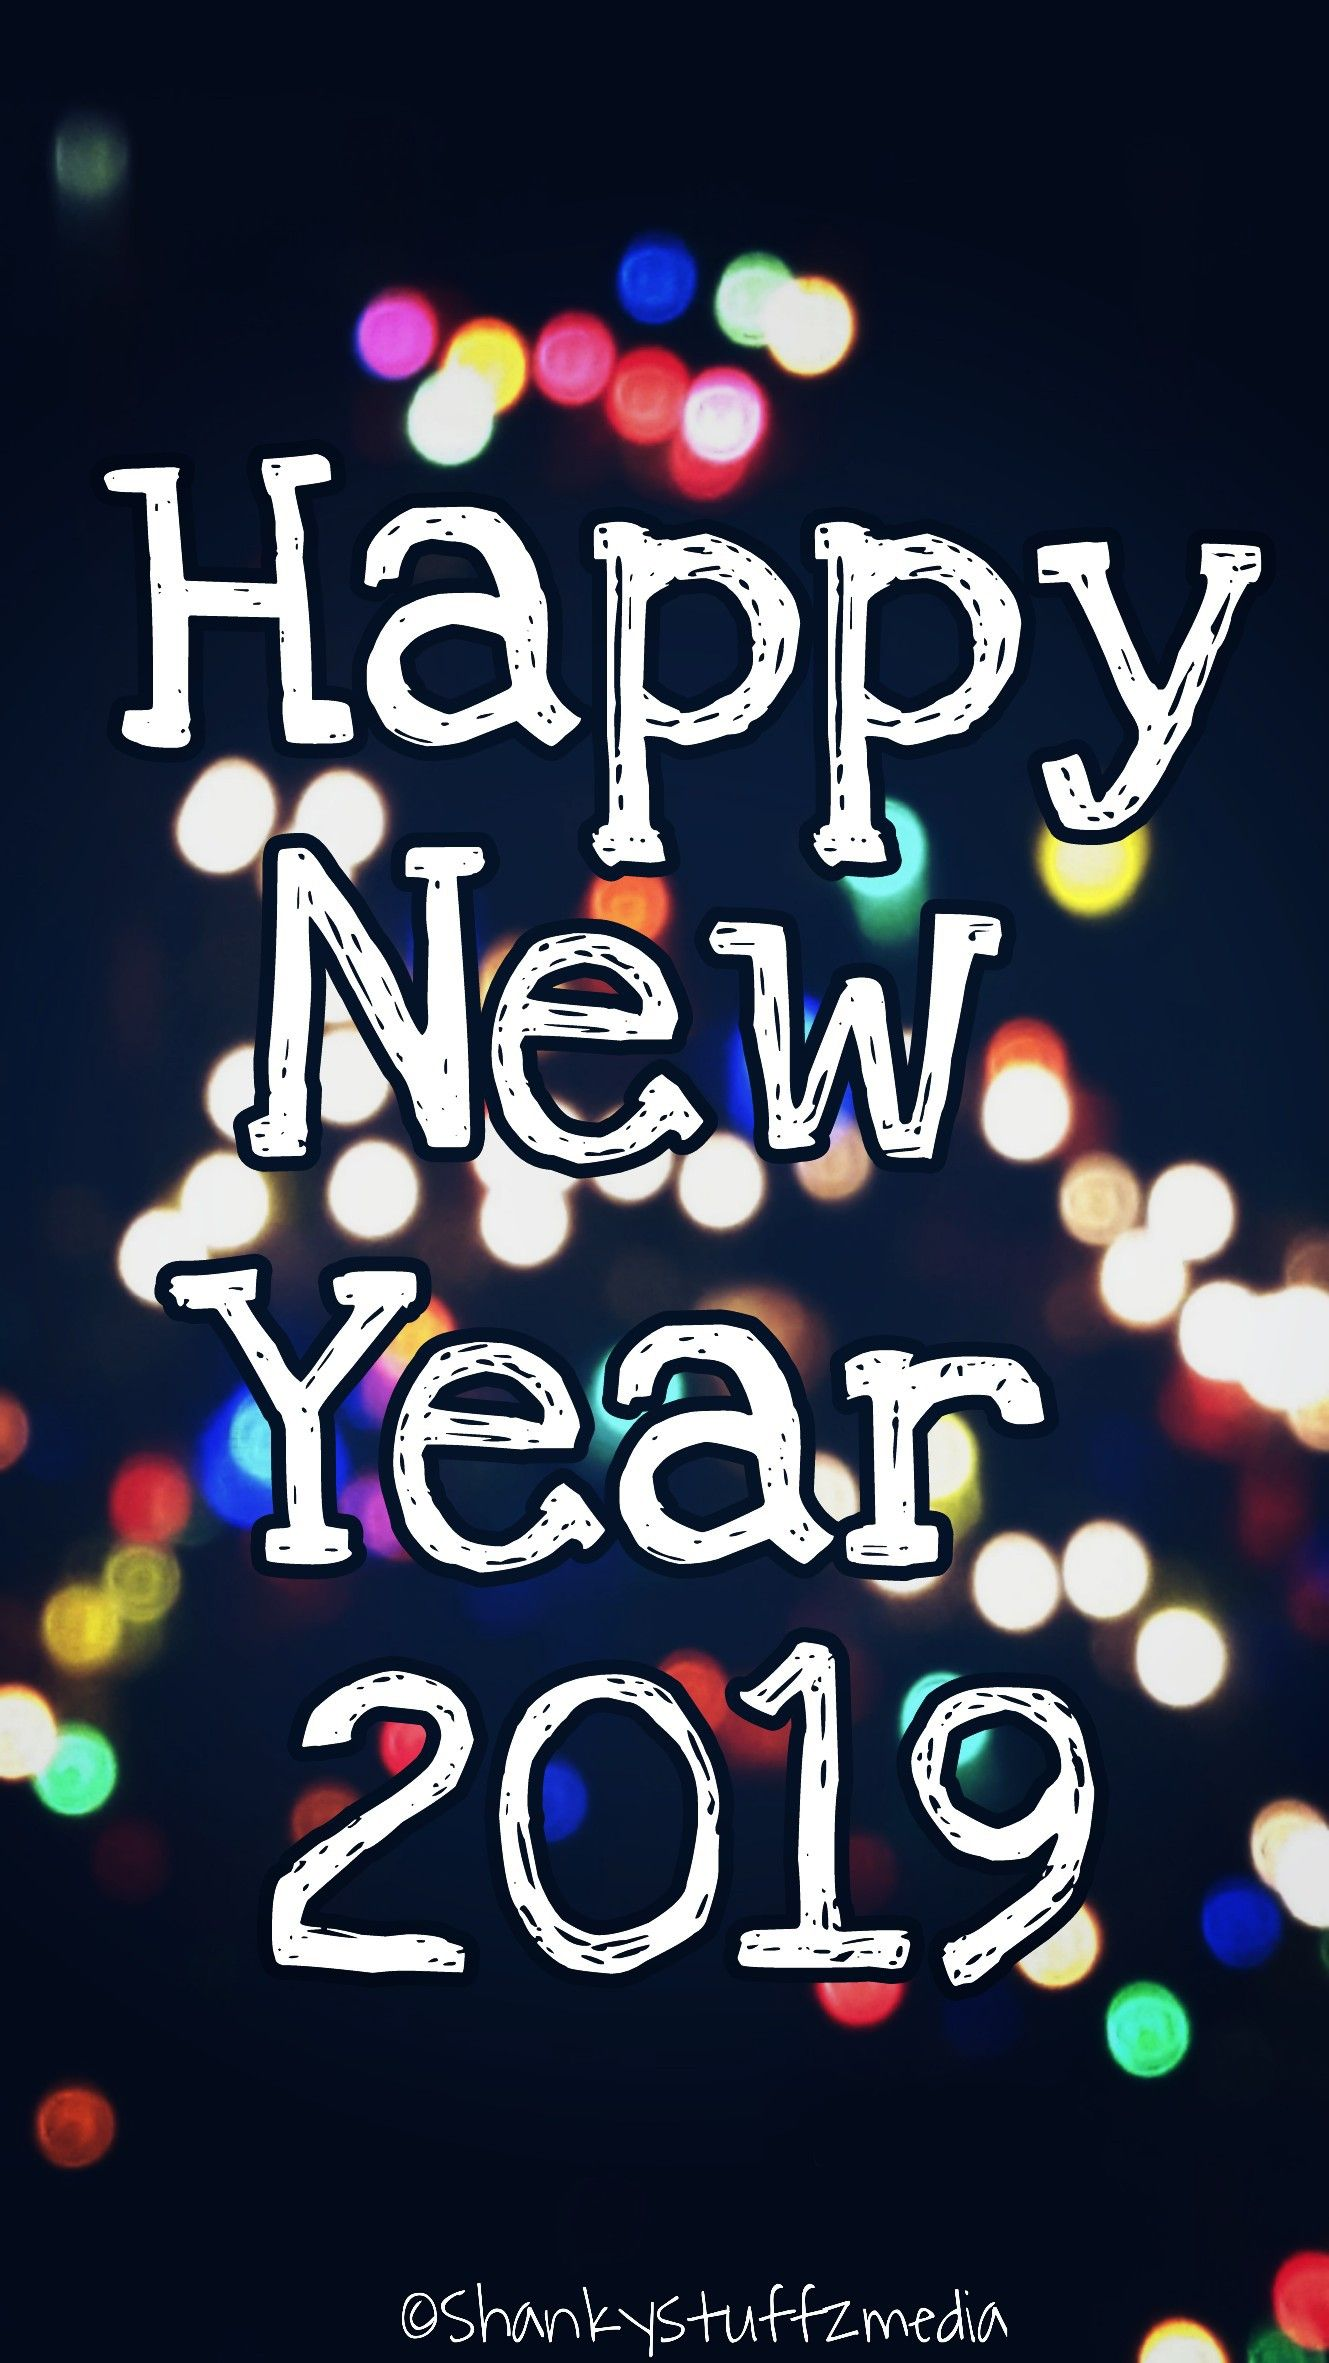 Happy New Year 2019 Wishes Images Happy New Year Pinterest